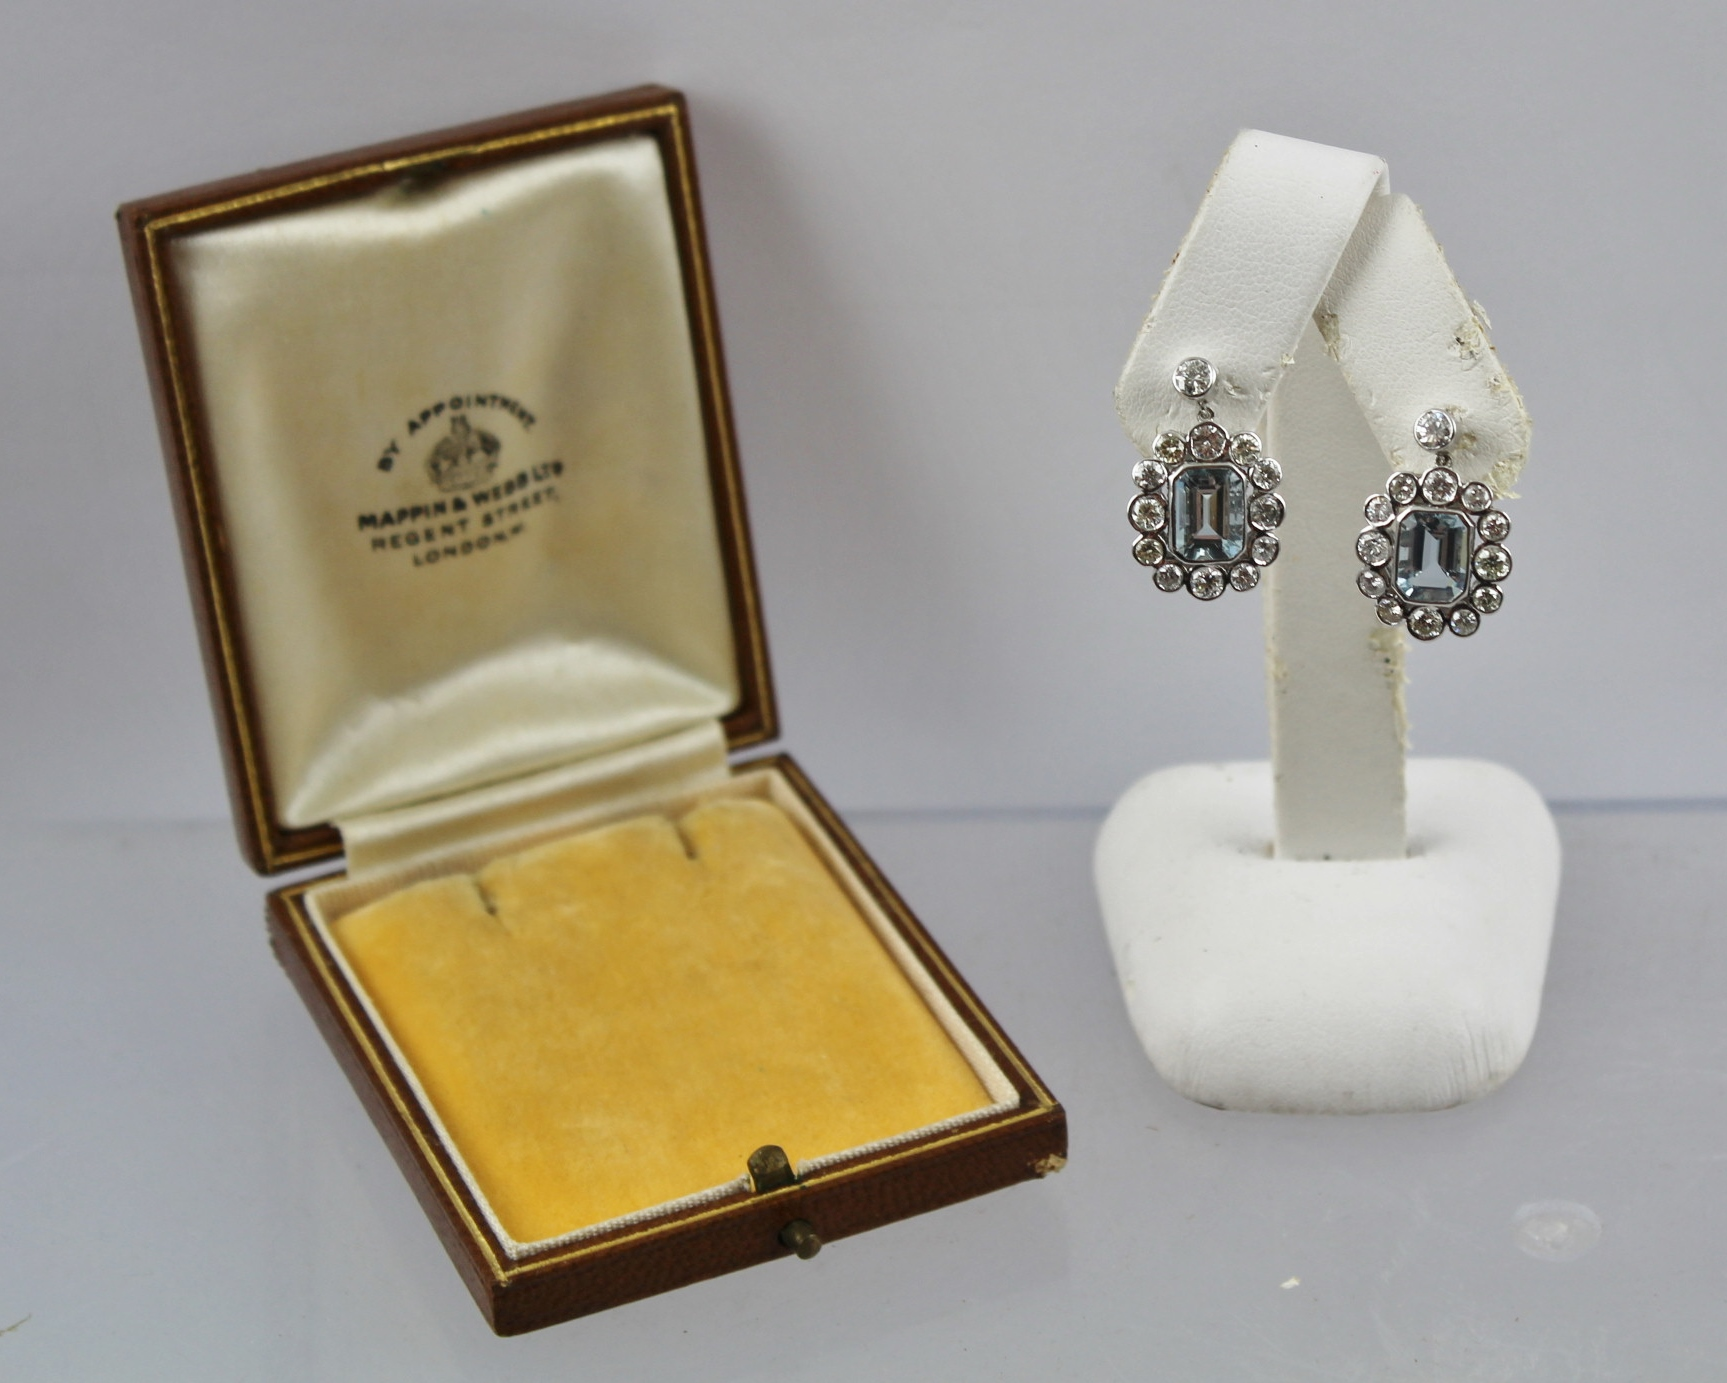 A PAIR OF AQUAMARINE AND DIAMOND CLUSTER WHITE GOLD COLOURED METAL DROP EARRINGS, each having a trap cut rub over set aquamarine bordered by thirteen brilliants, on butterfly drop fittings, in a Mappin & Webb presentation box